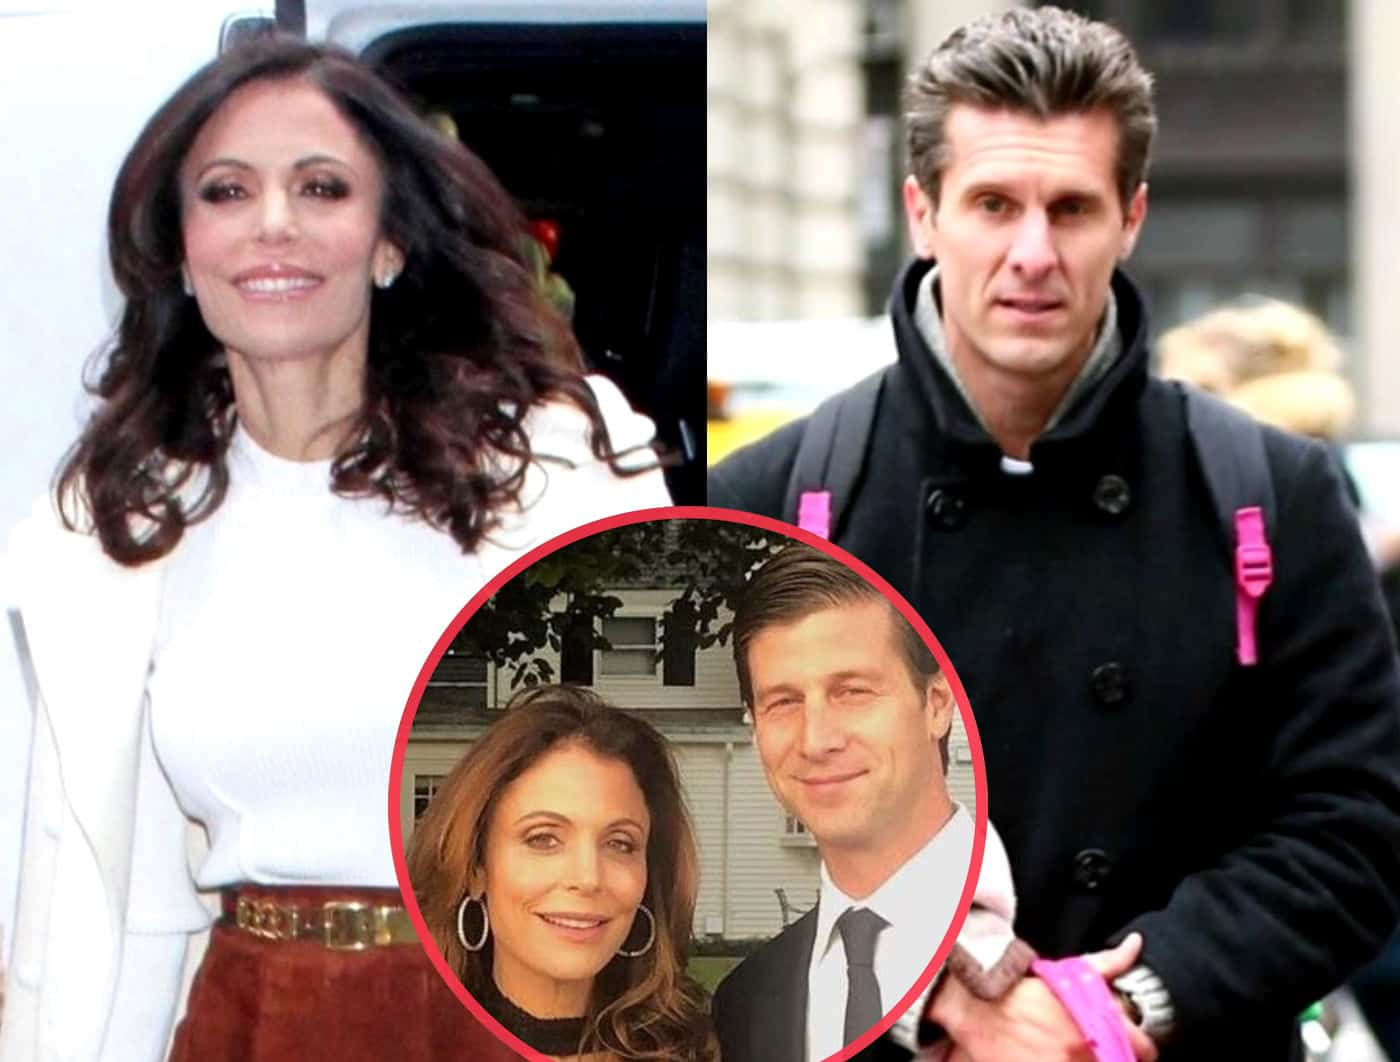 RHONY's Bethenny Frankel Finalizes Divorce From Jason Hoppy 8 Years After Split, Sparks Rumors of an Engagement to Boyfriend Paul Bernon With Massive Diamond Ring